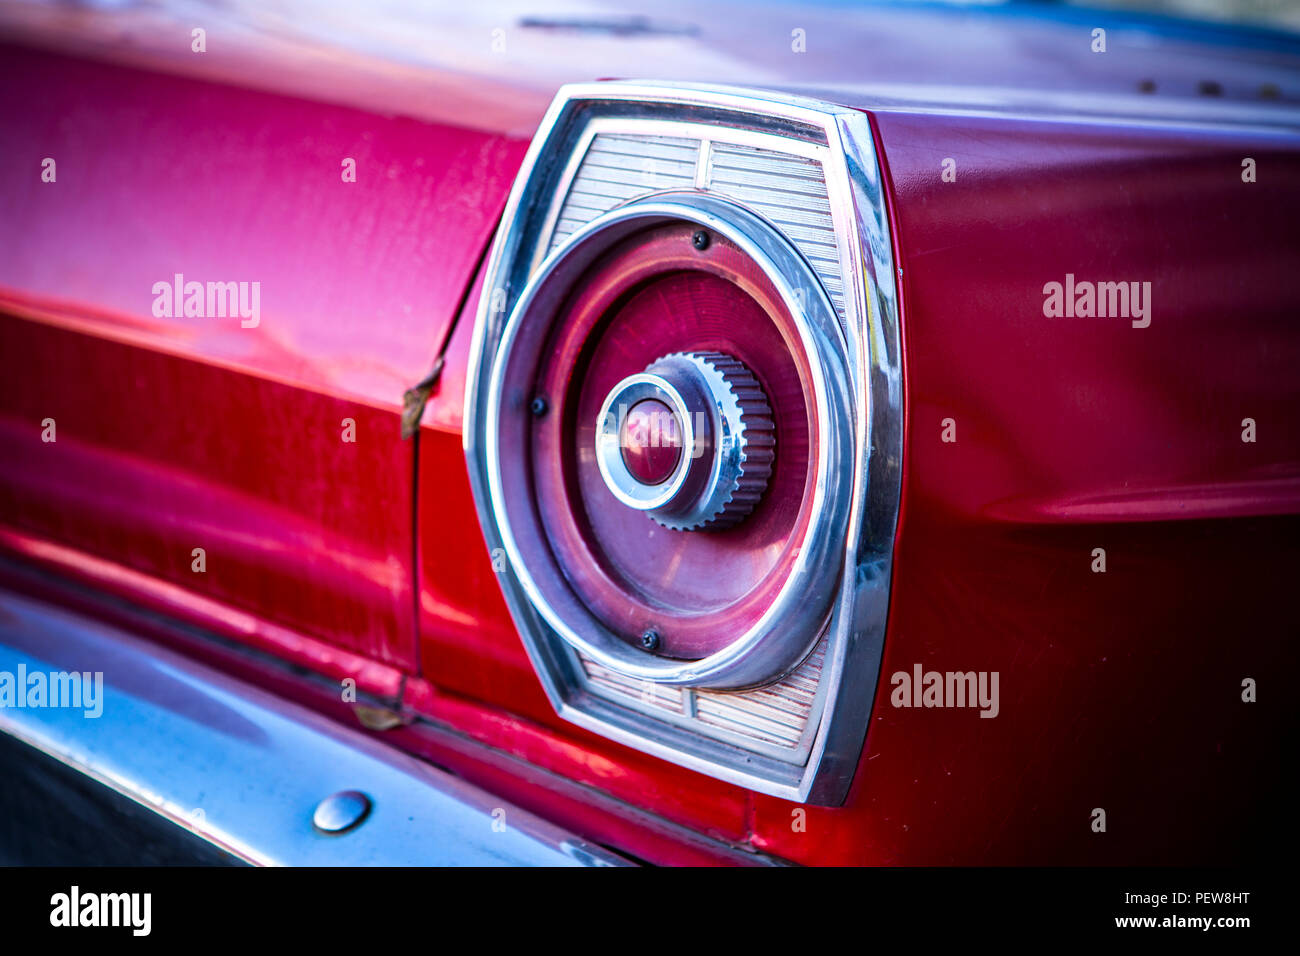 Derelict car tail light - Stock Image